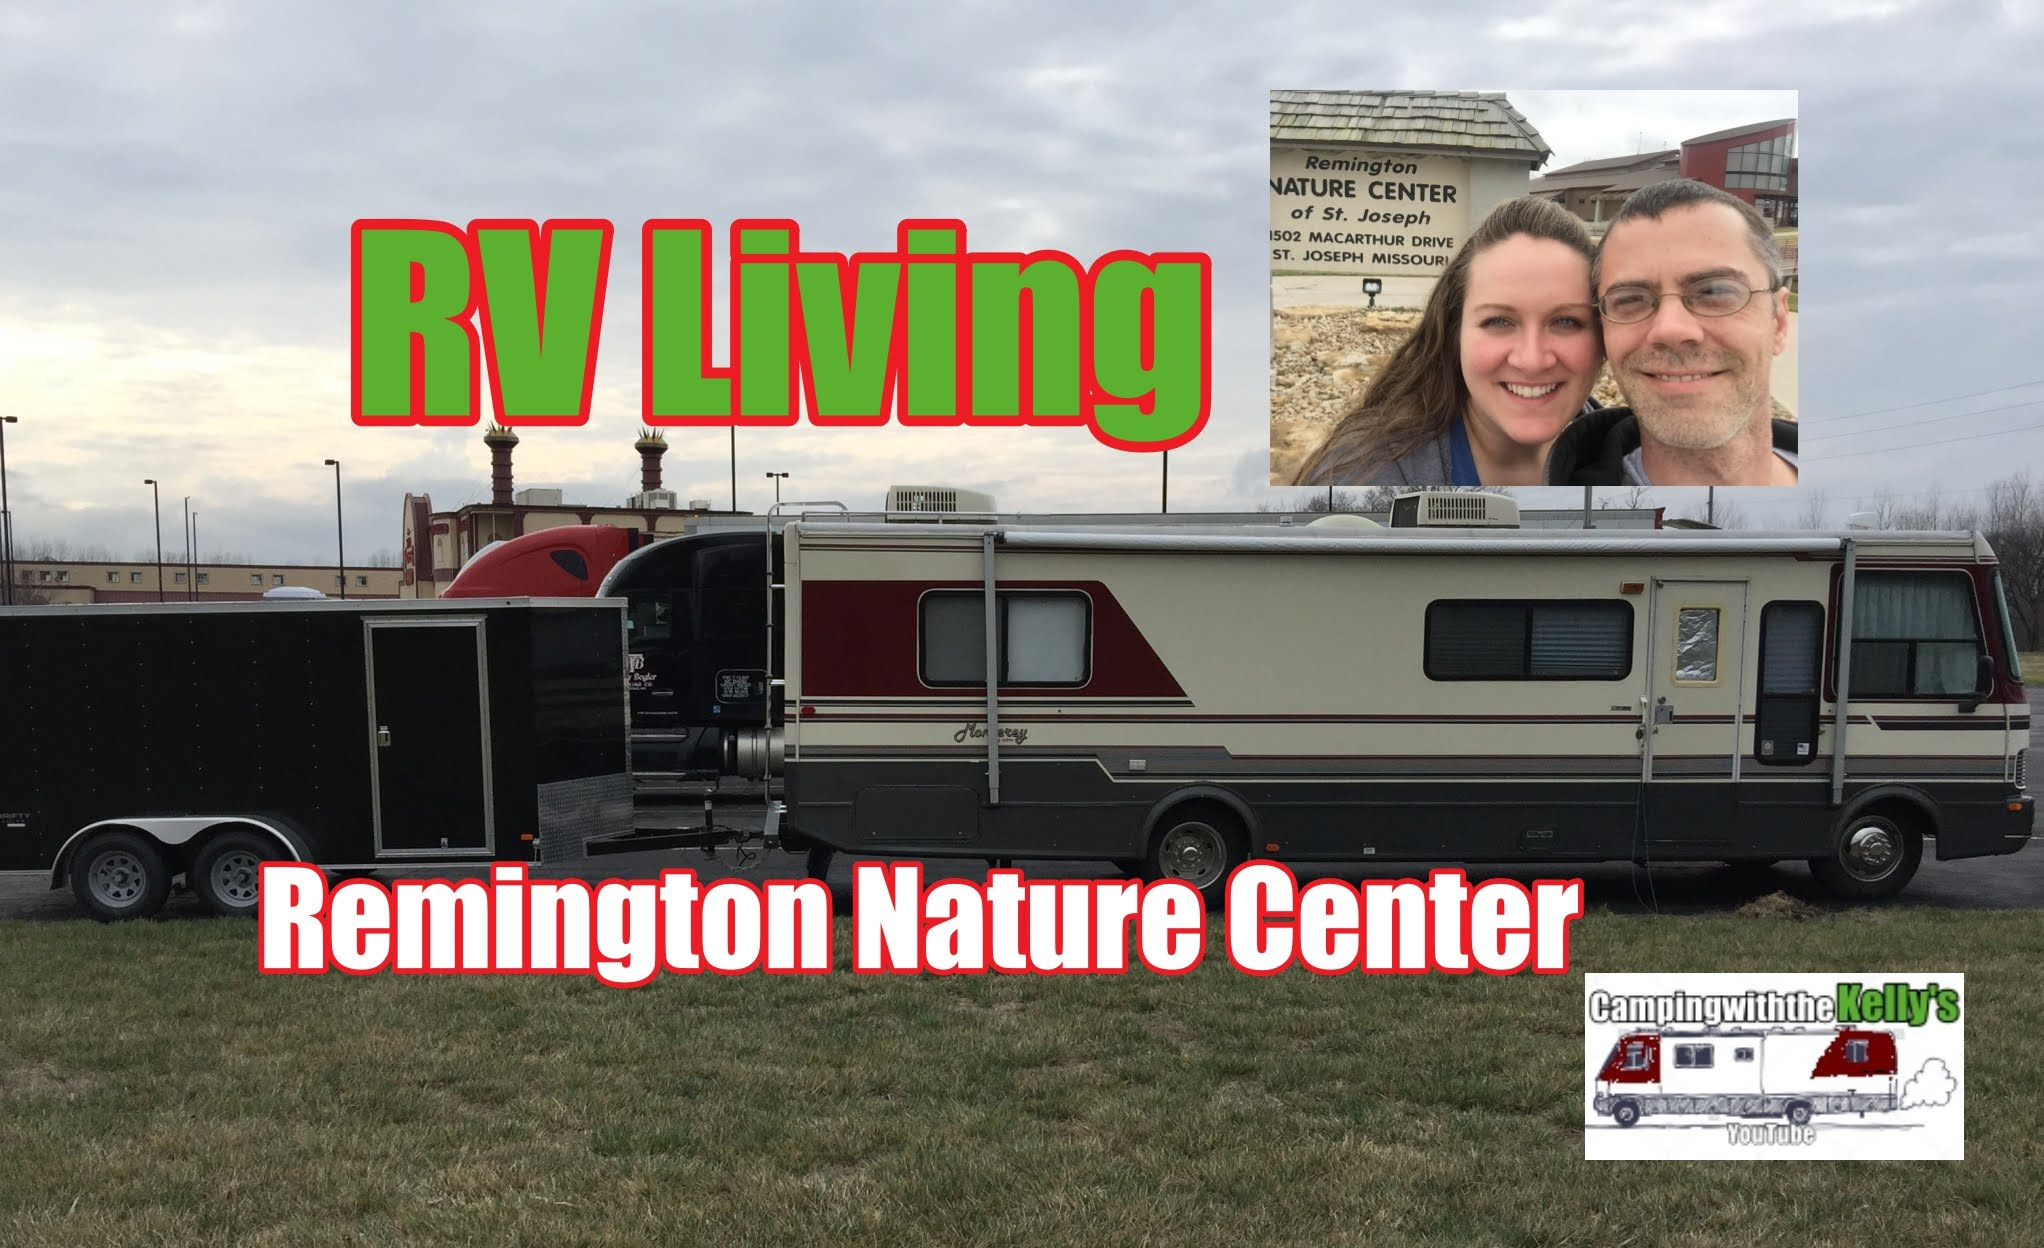 Take A Tour Thru Remington Nature Center St.Joseph,MO